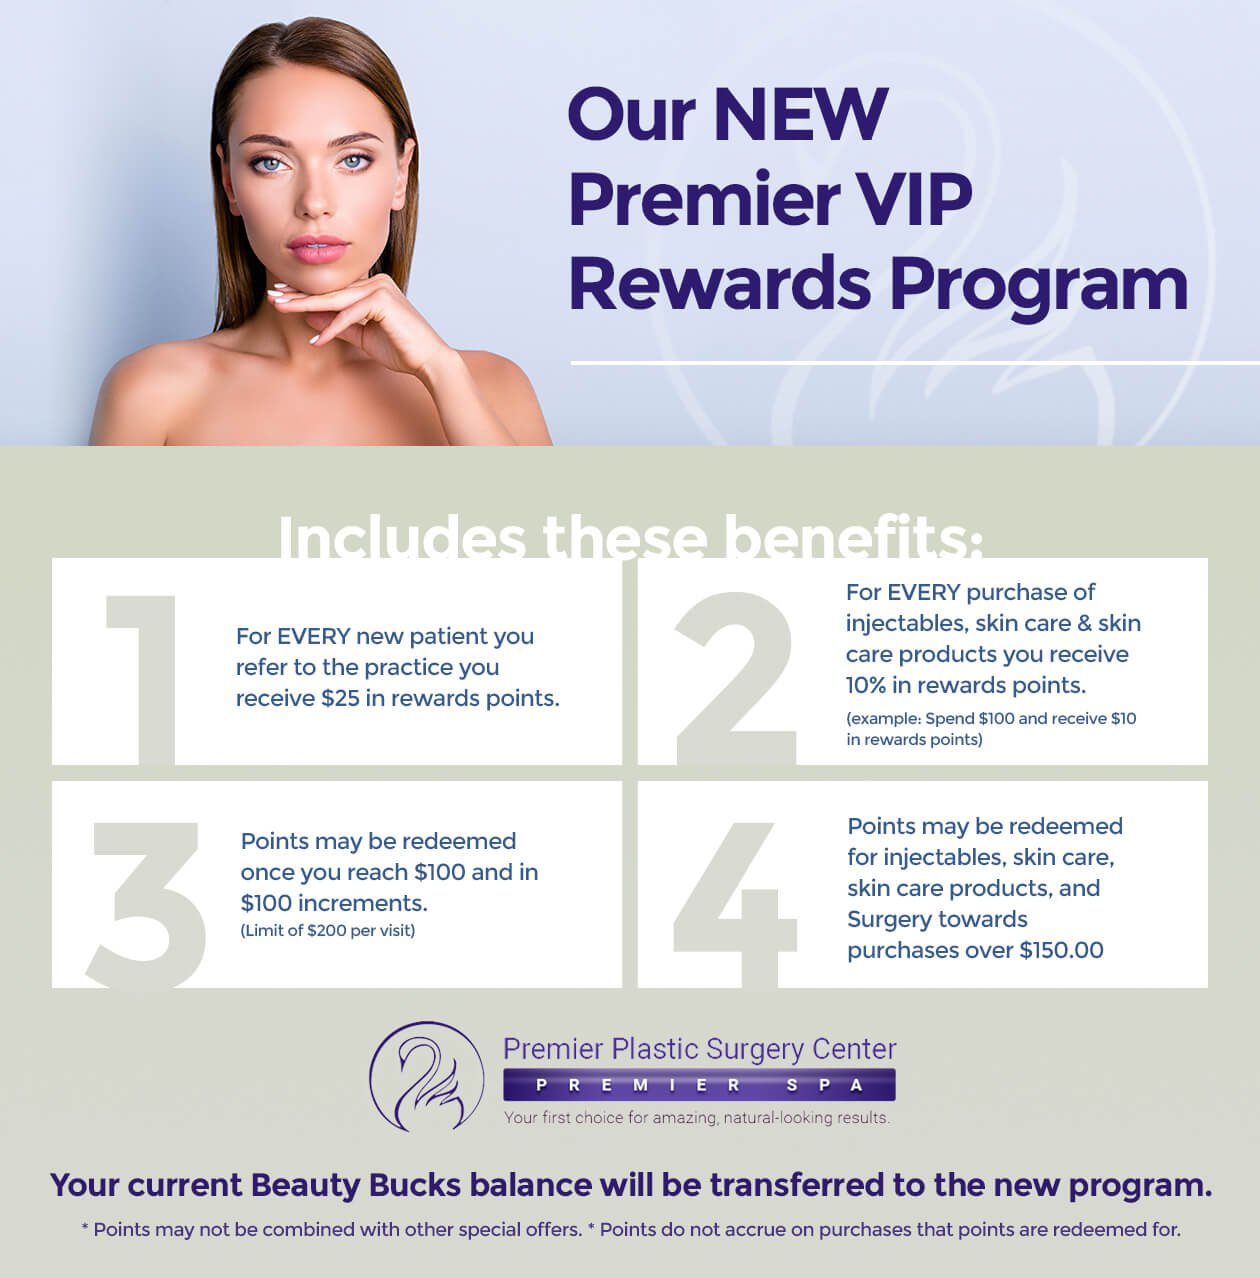 Premier VIP Rewards Program